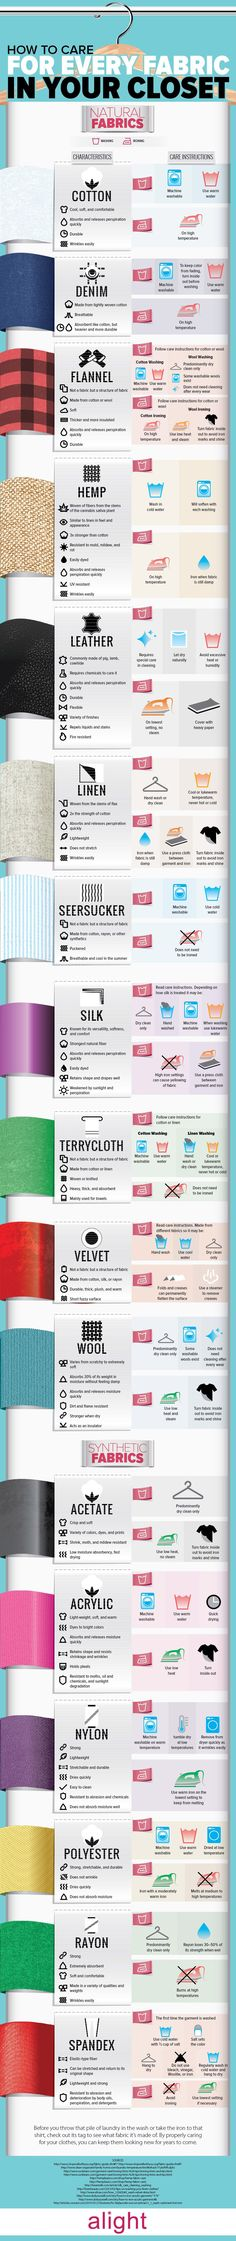 How to Care for Every Fabric in Your Closet #infographic #HowTo #Fabric